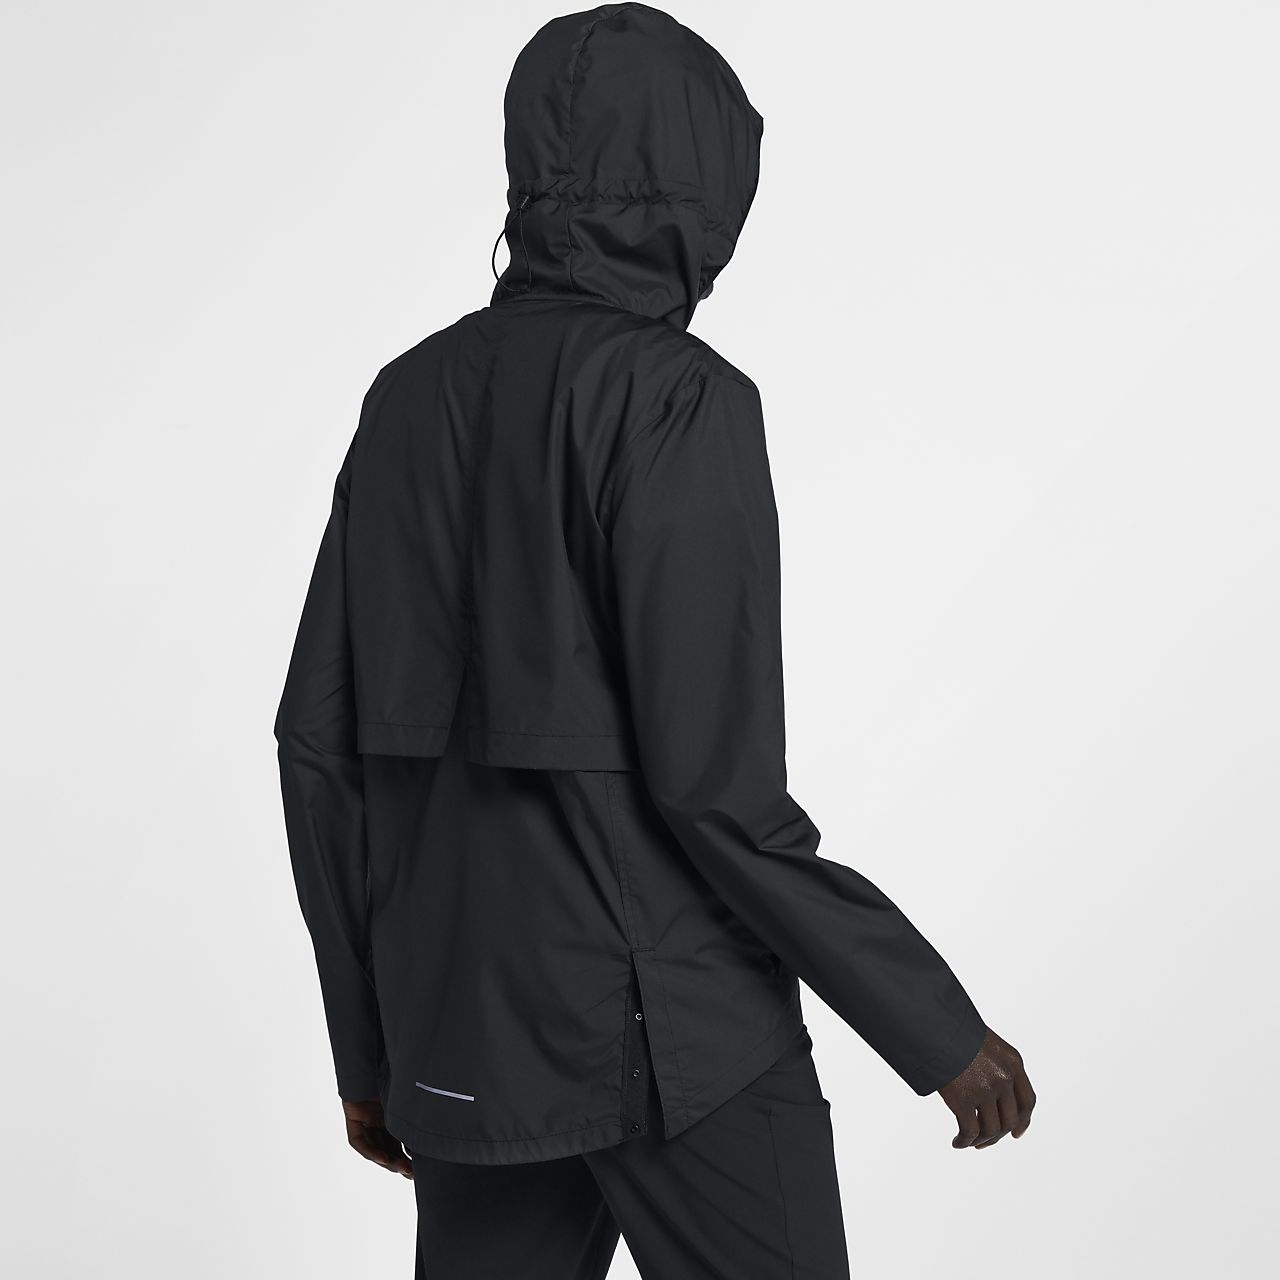 online store f260f 40bde ... Nike Essential Women s Packable Running Rain Jacket